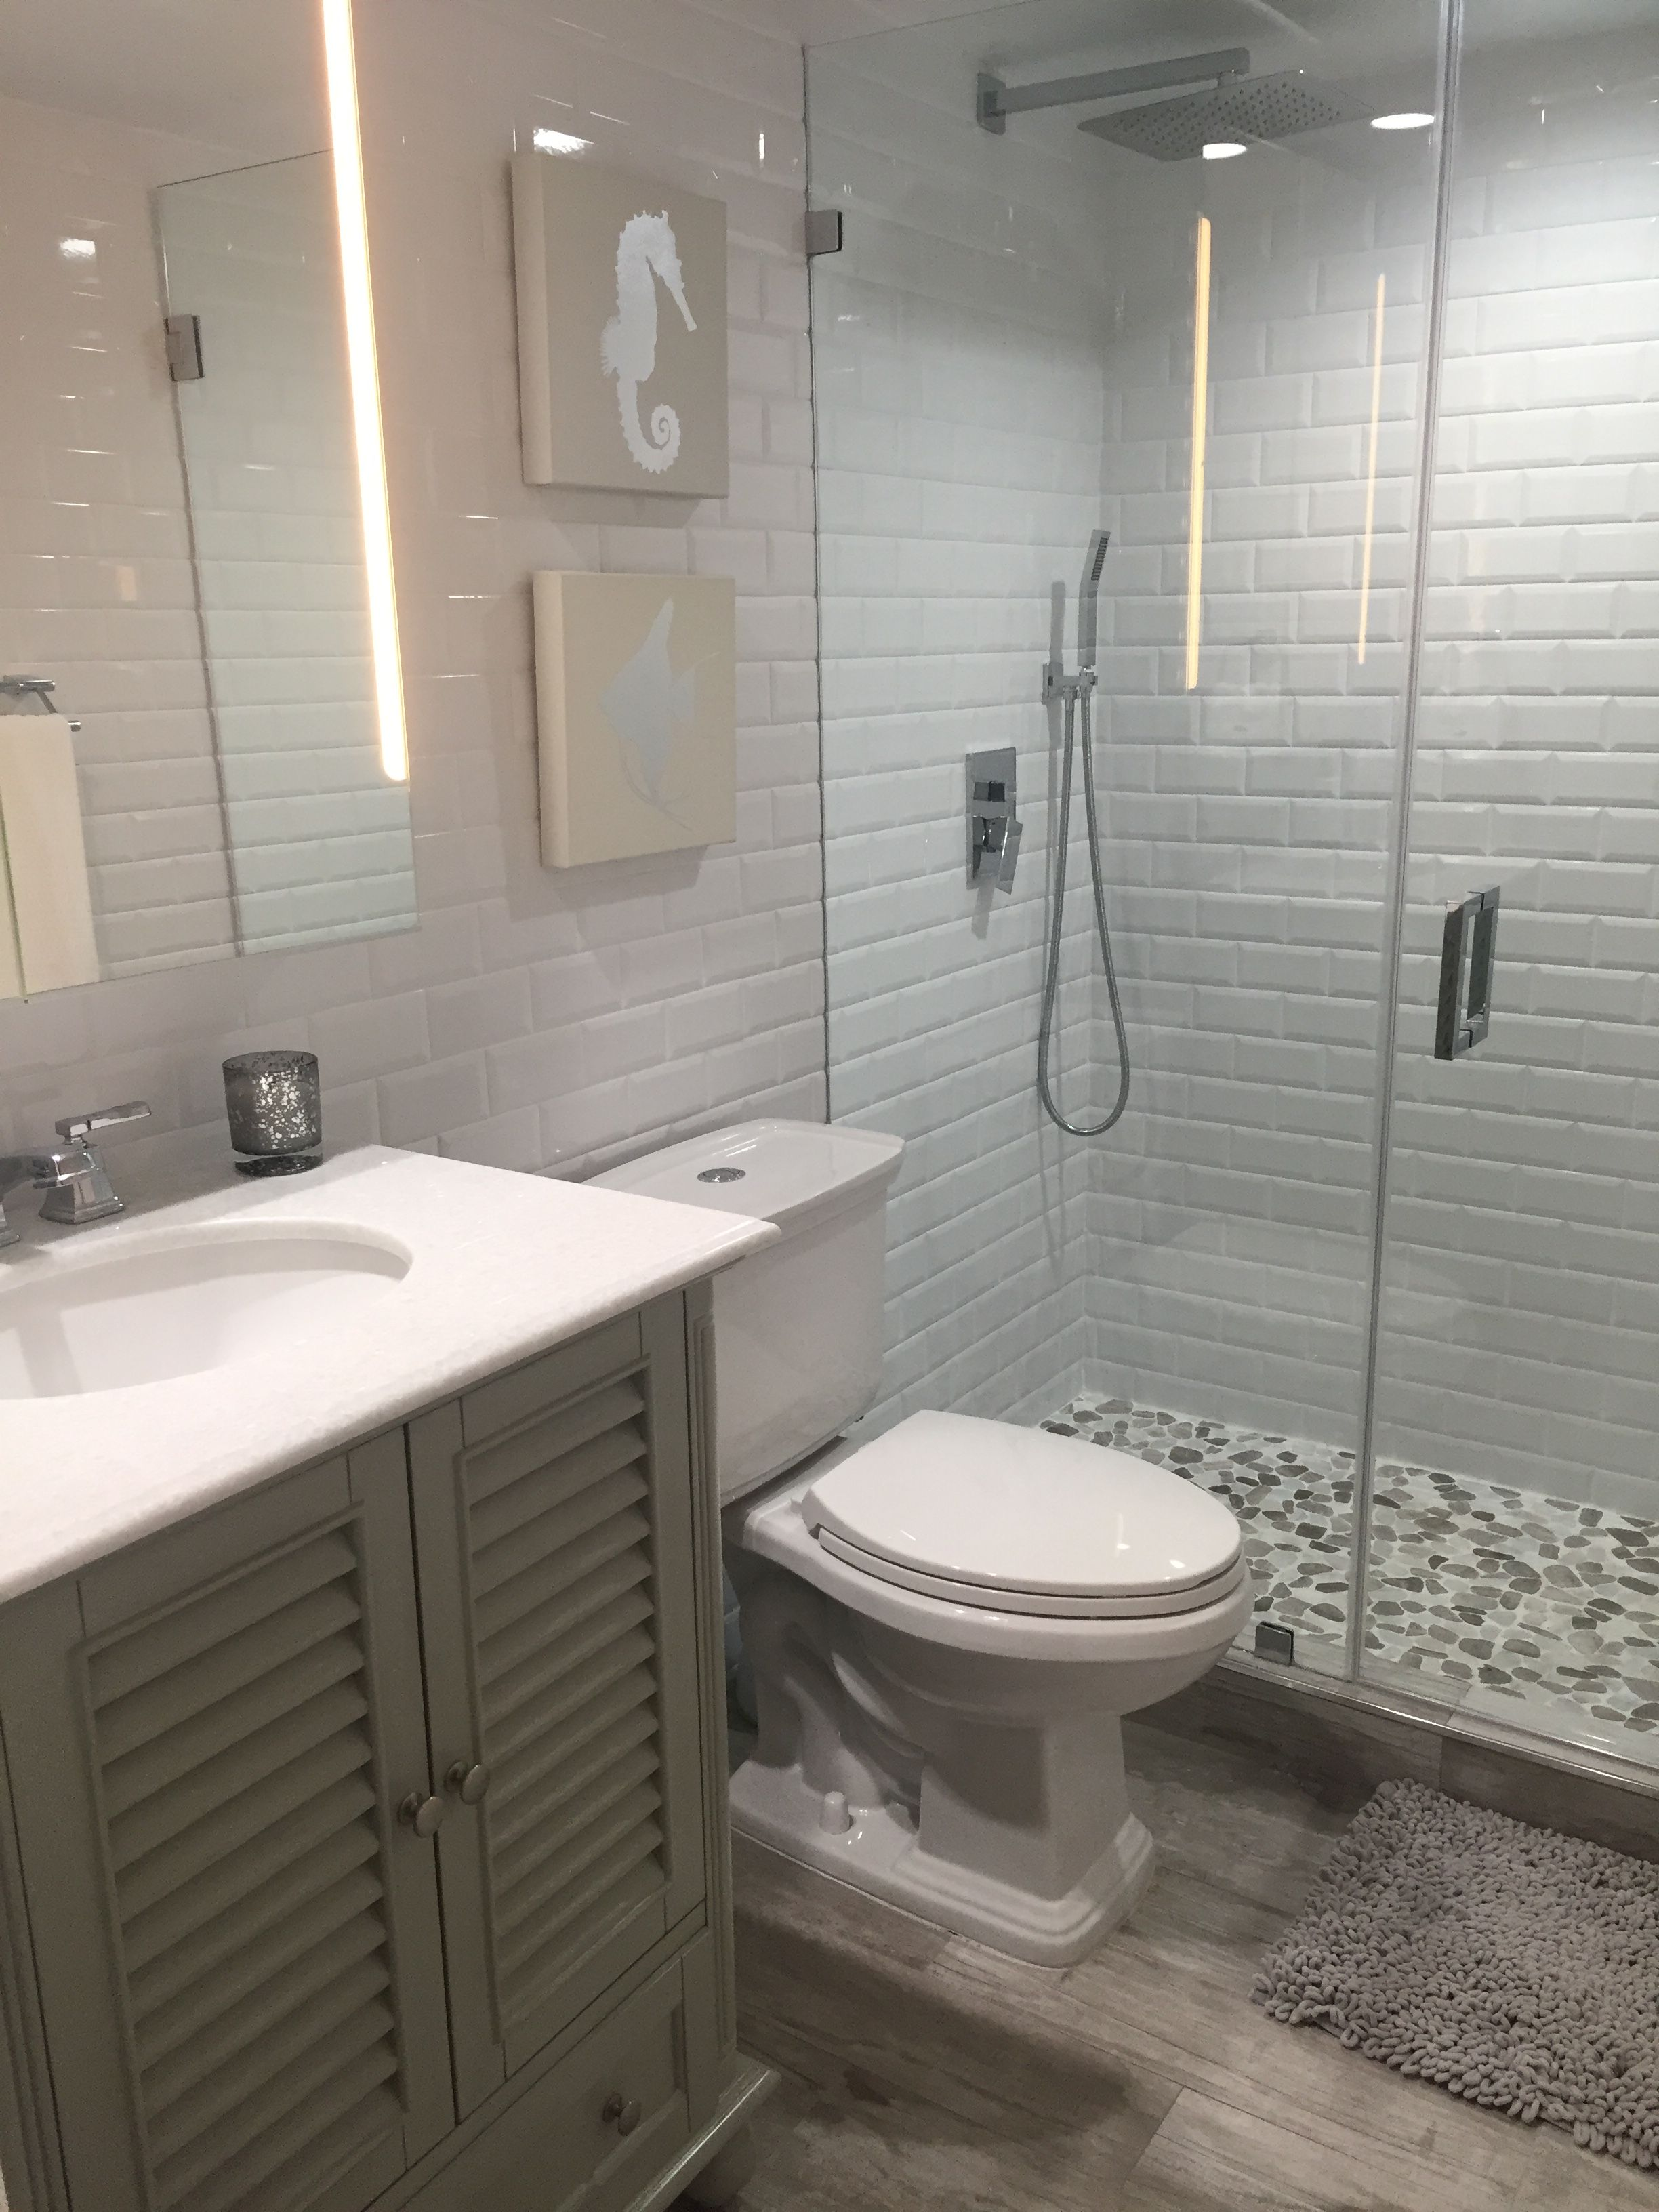 Buffalo bathroom remodel contractors, Buffalo bathroom remodeling, Buffalo bathroom remodeling quote.